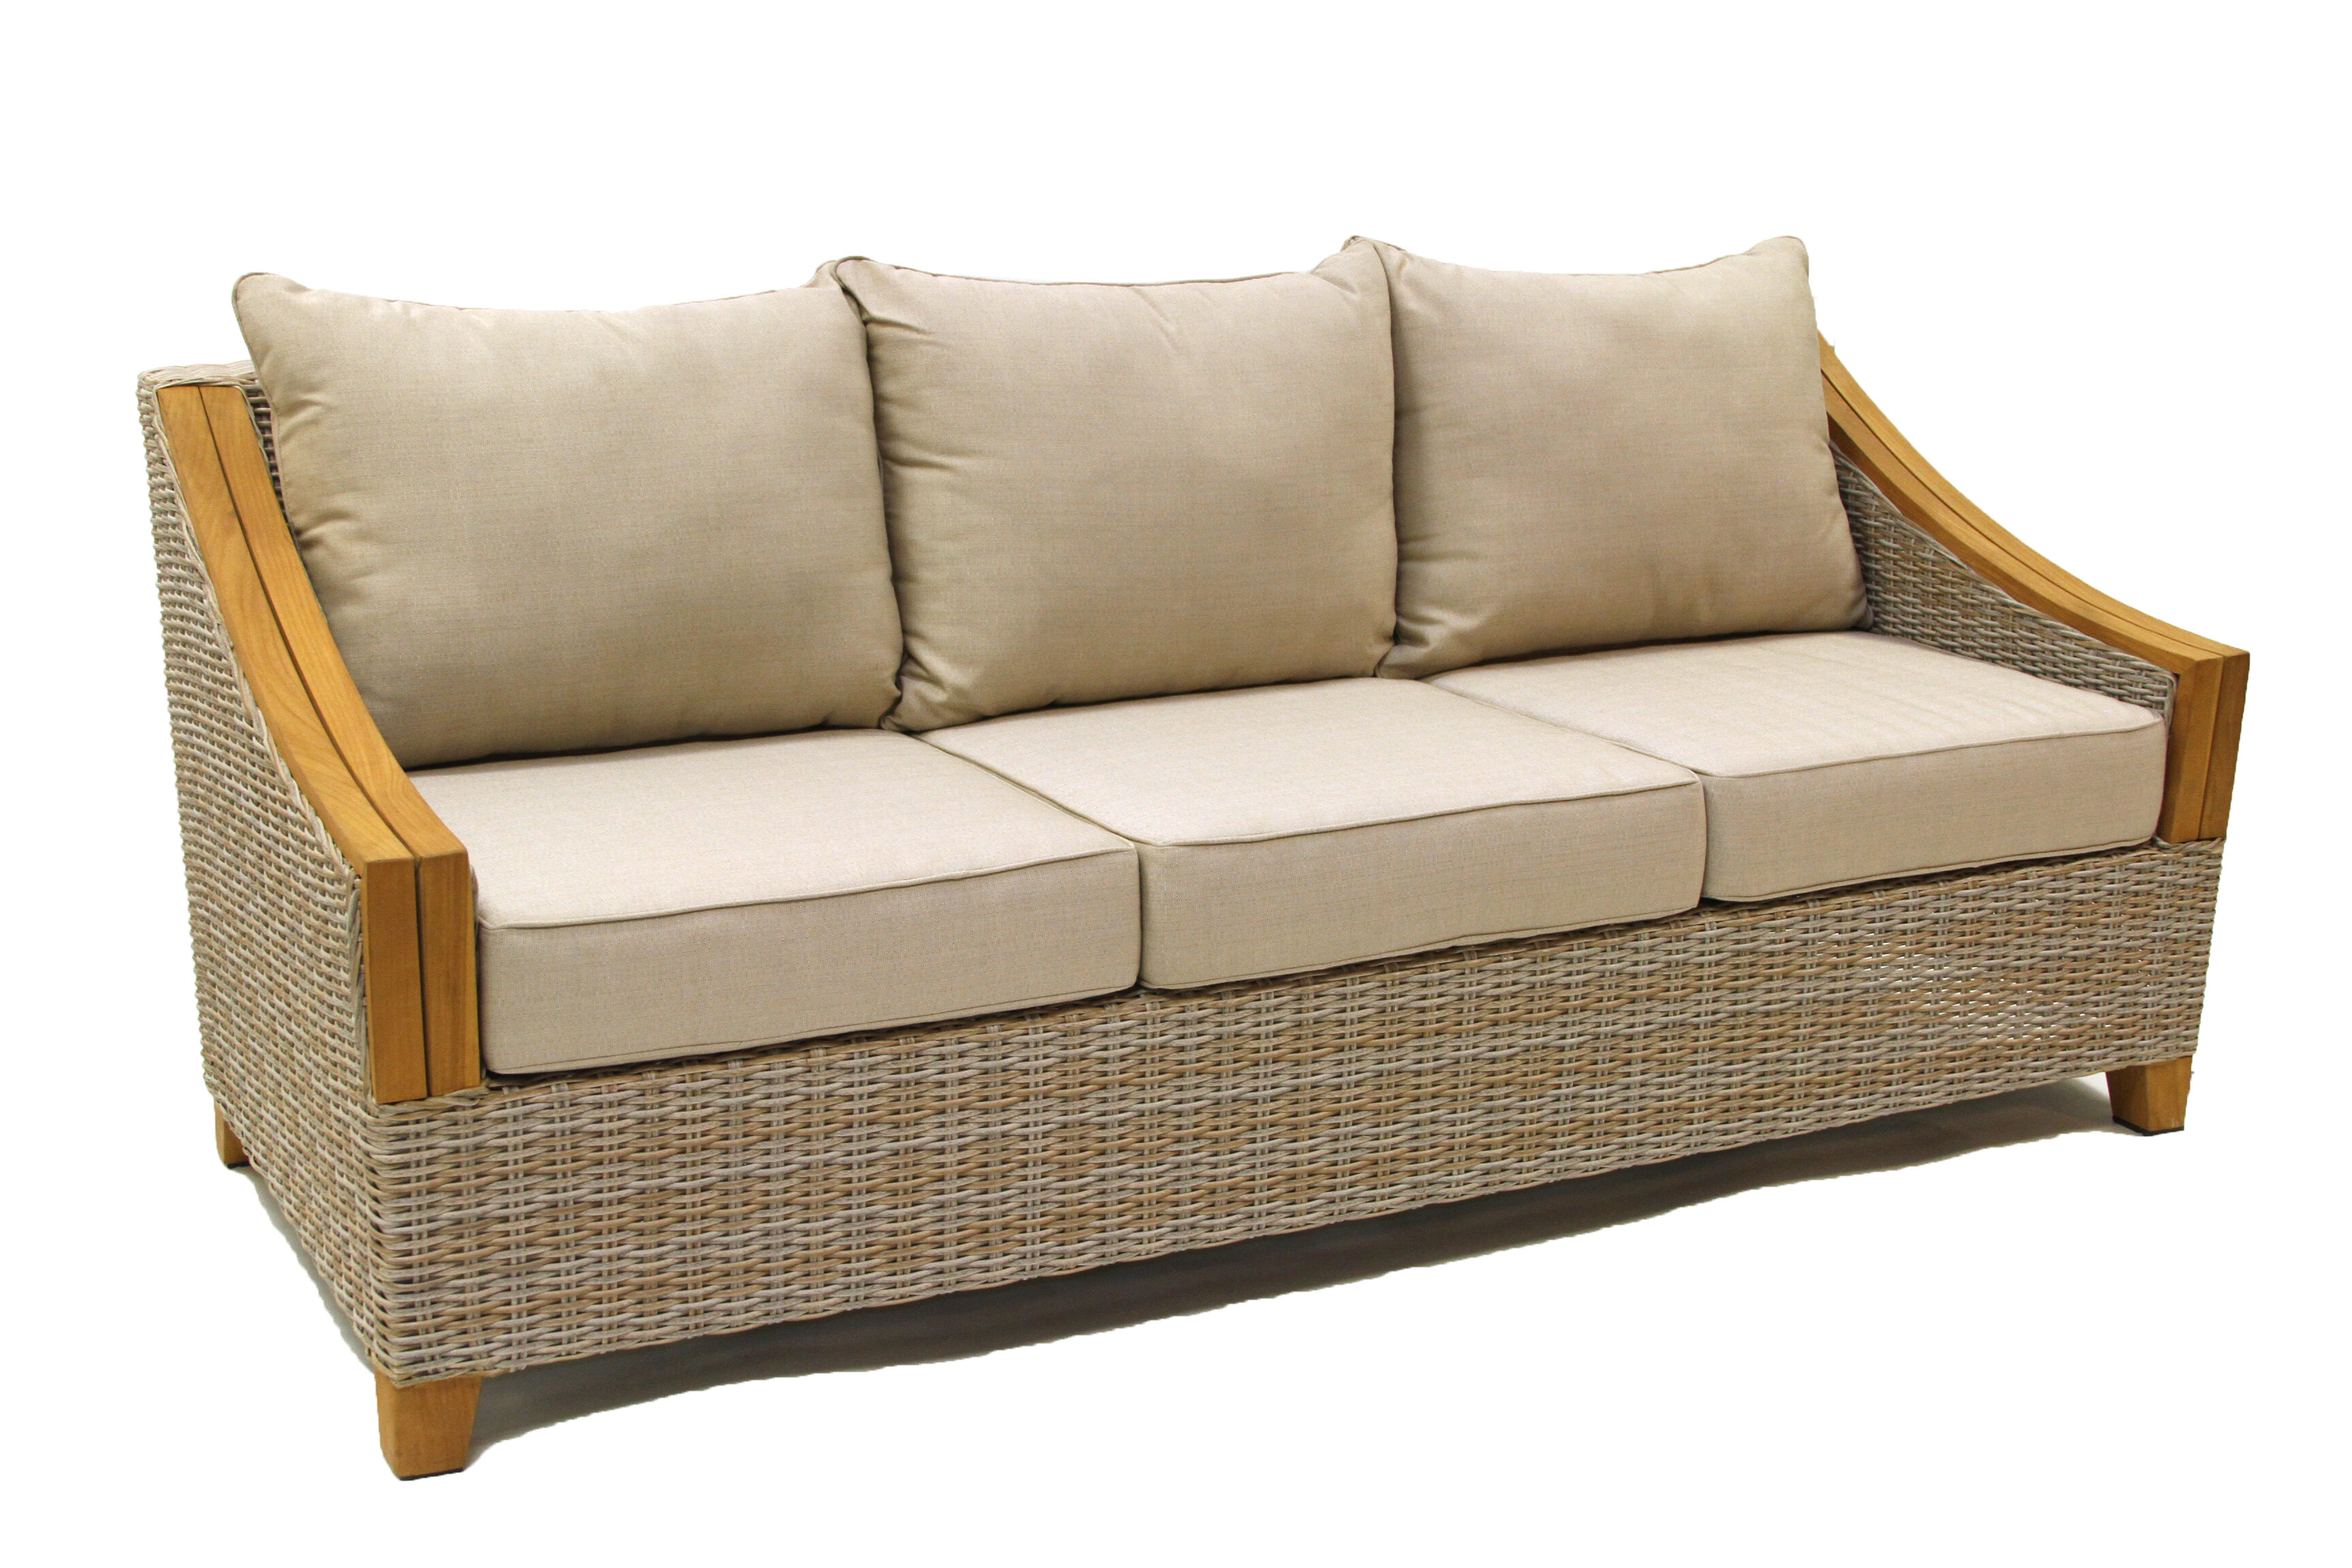 "Desmond 78"" Wicker & Teak Patio Sofa & Reviews"